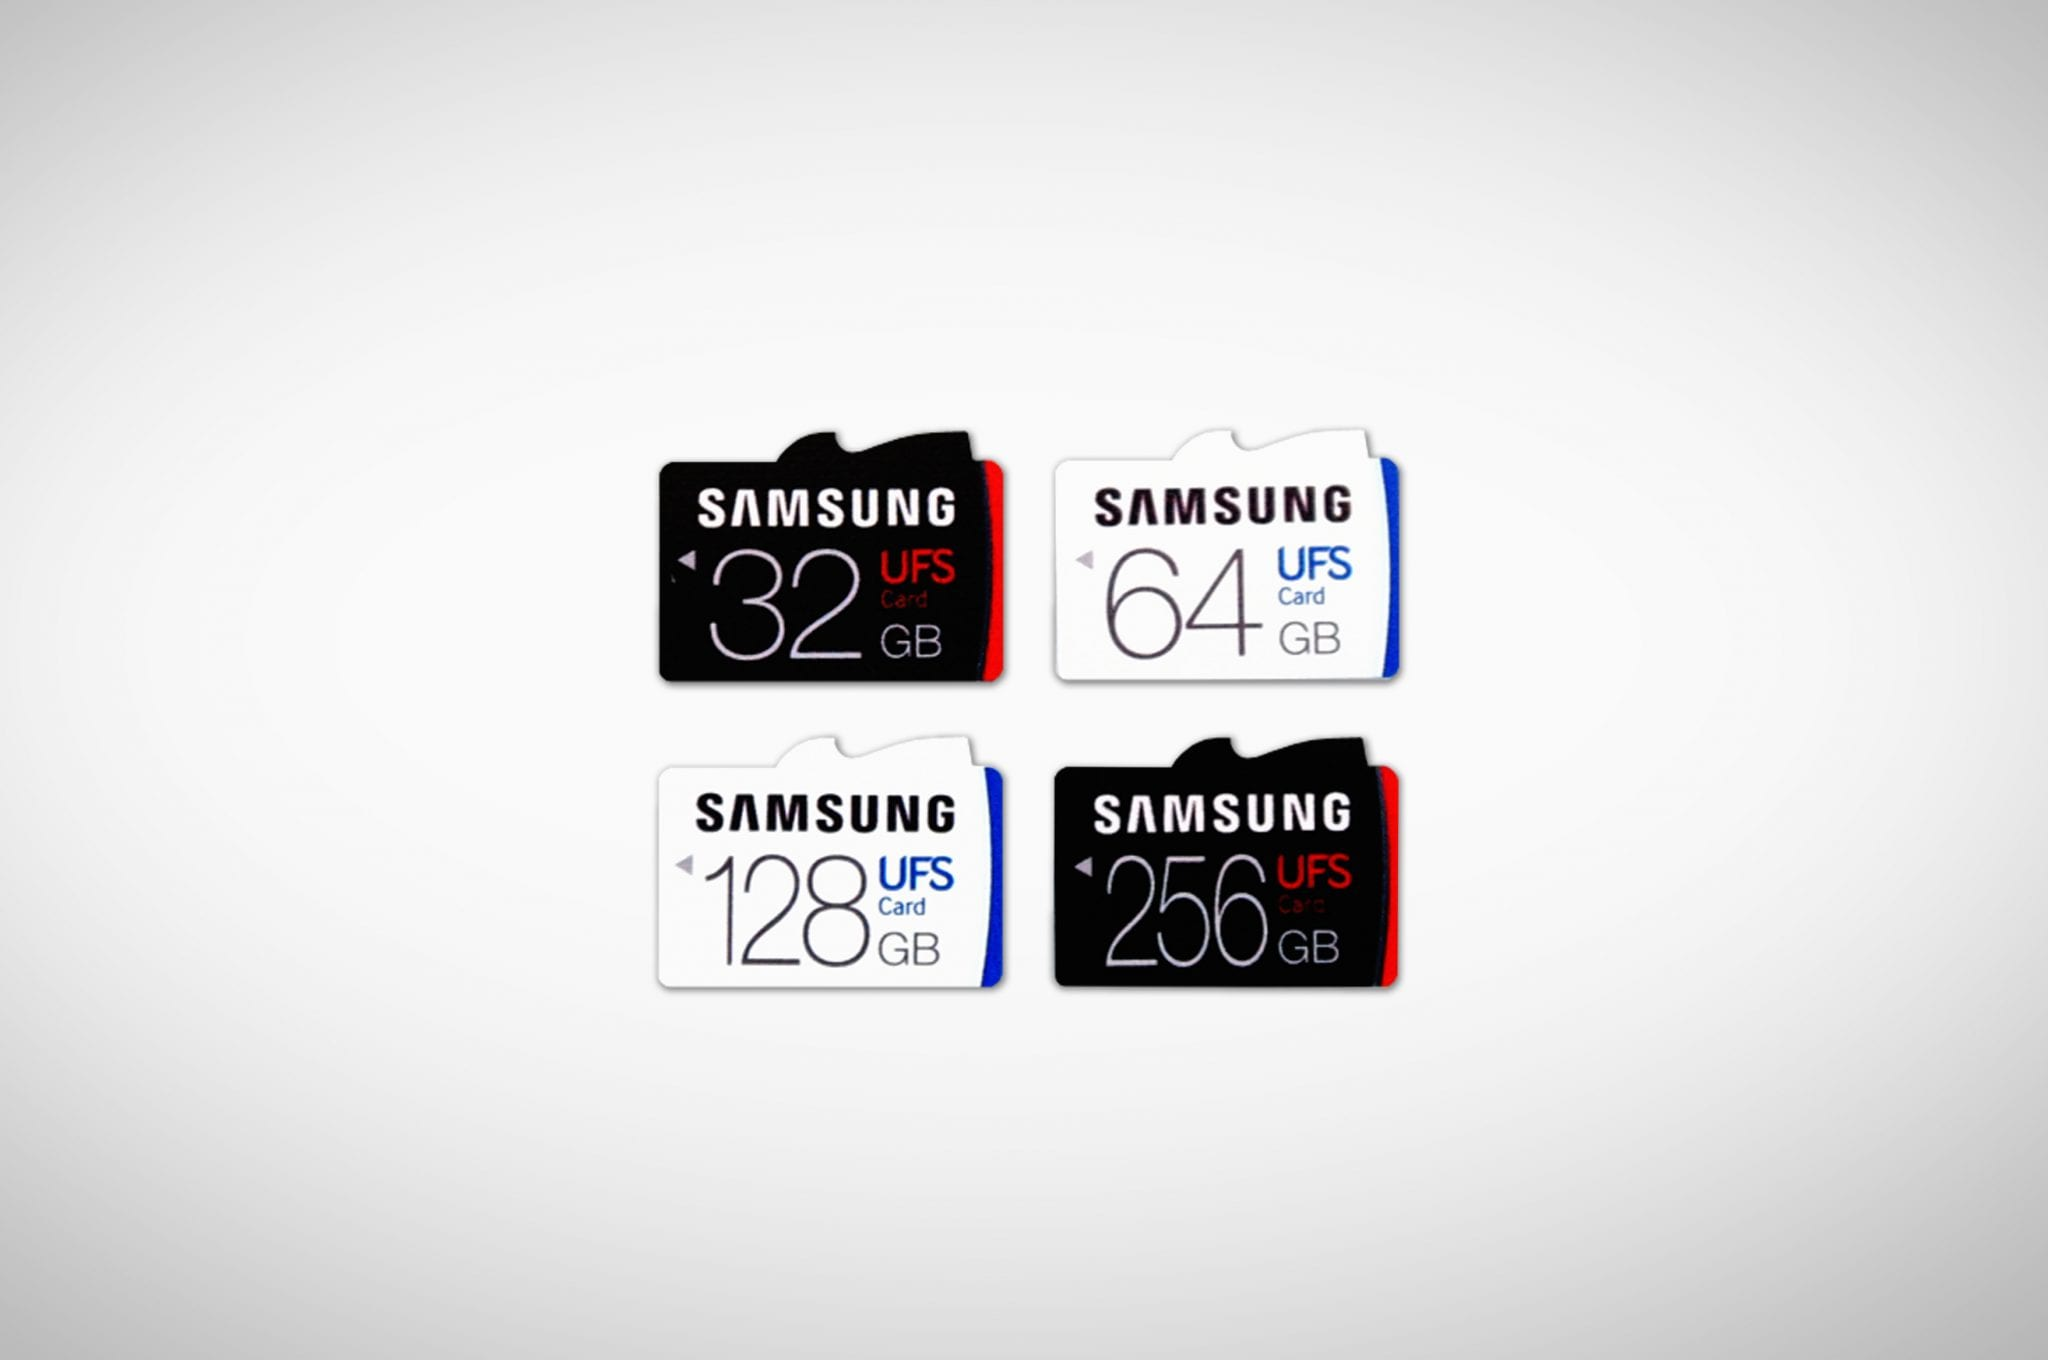 Samsung's New Universal Flash Storage(UFS)